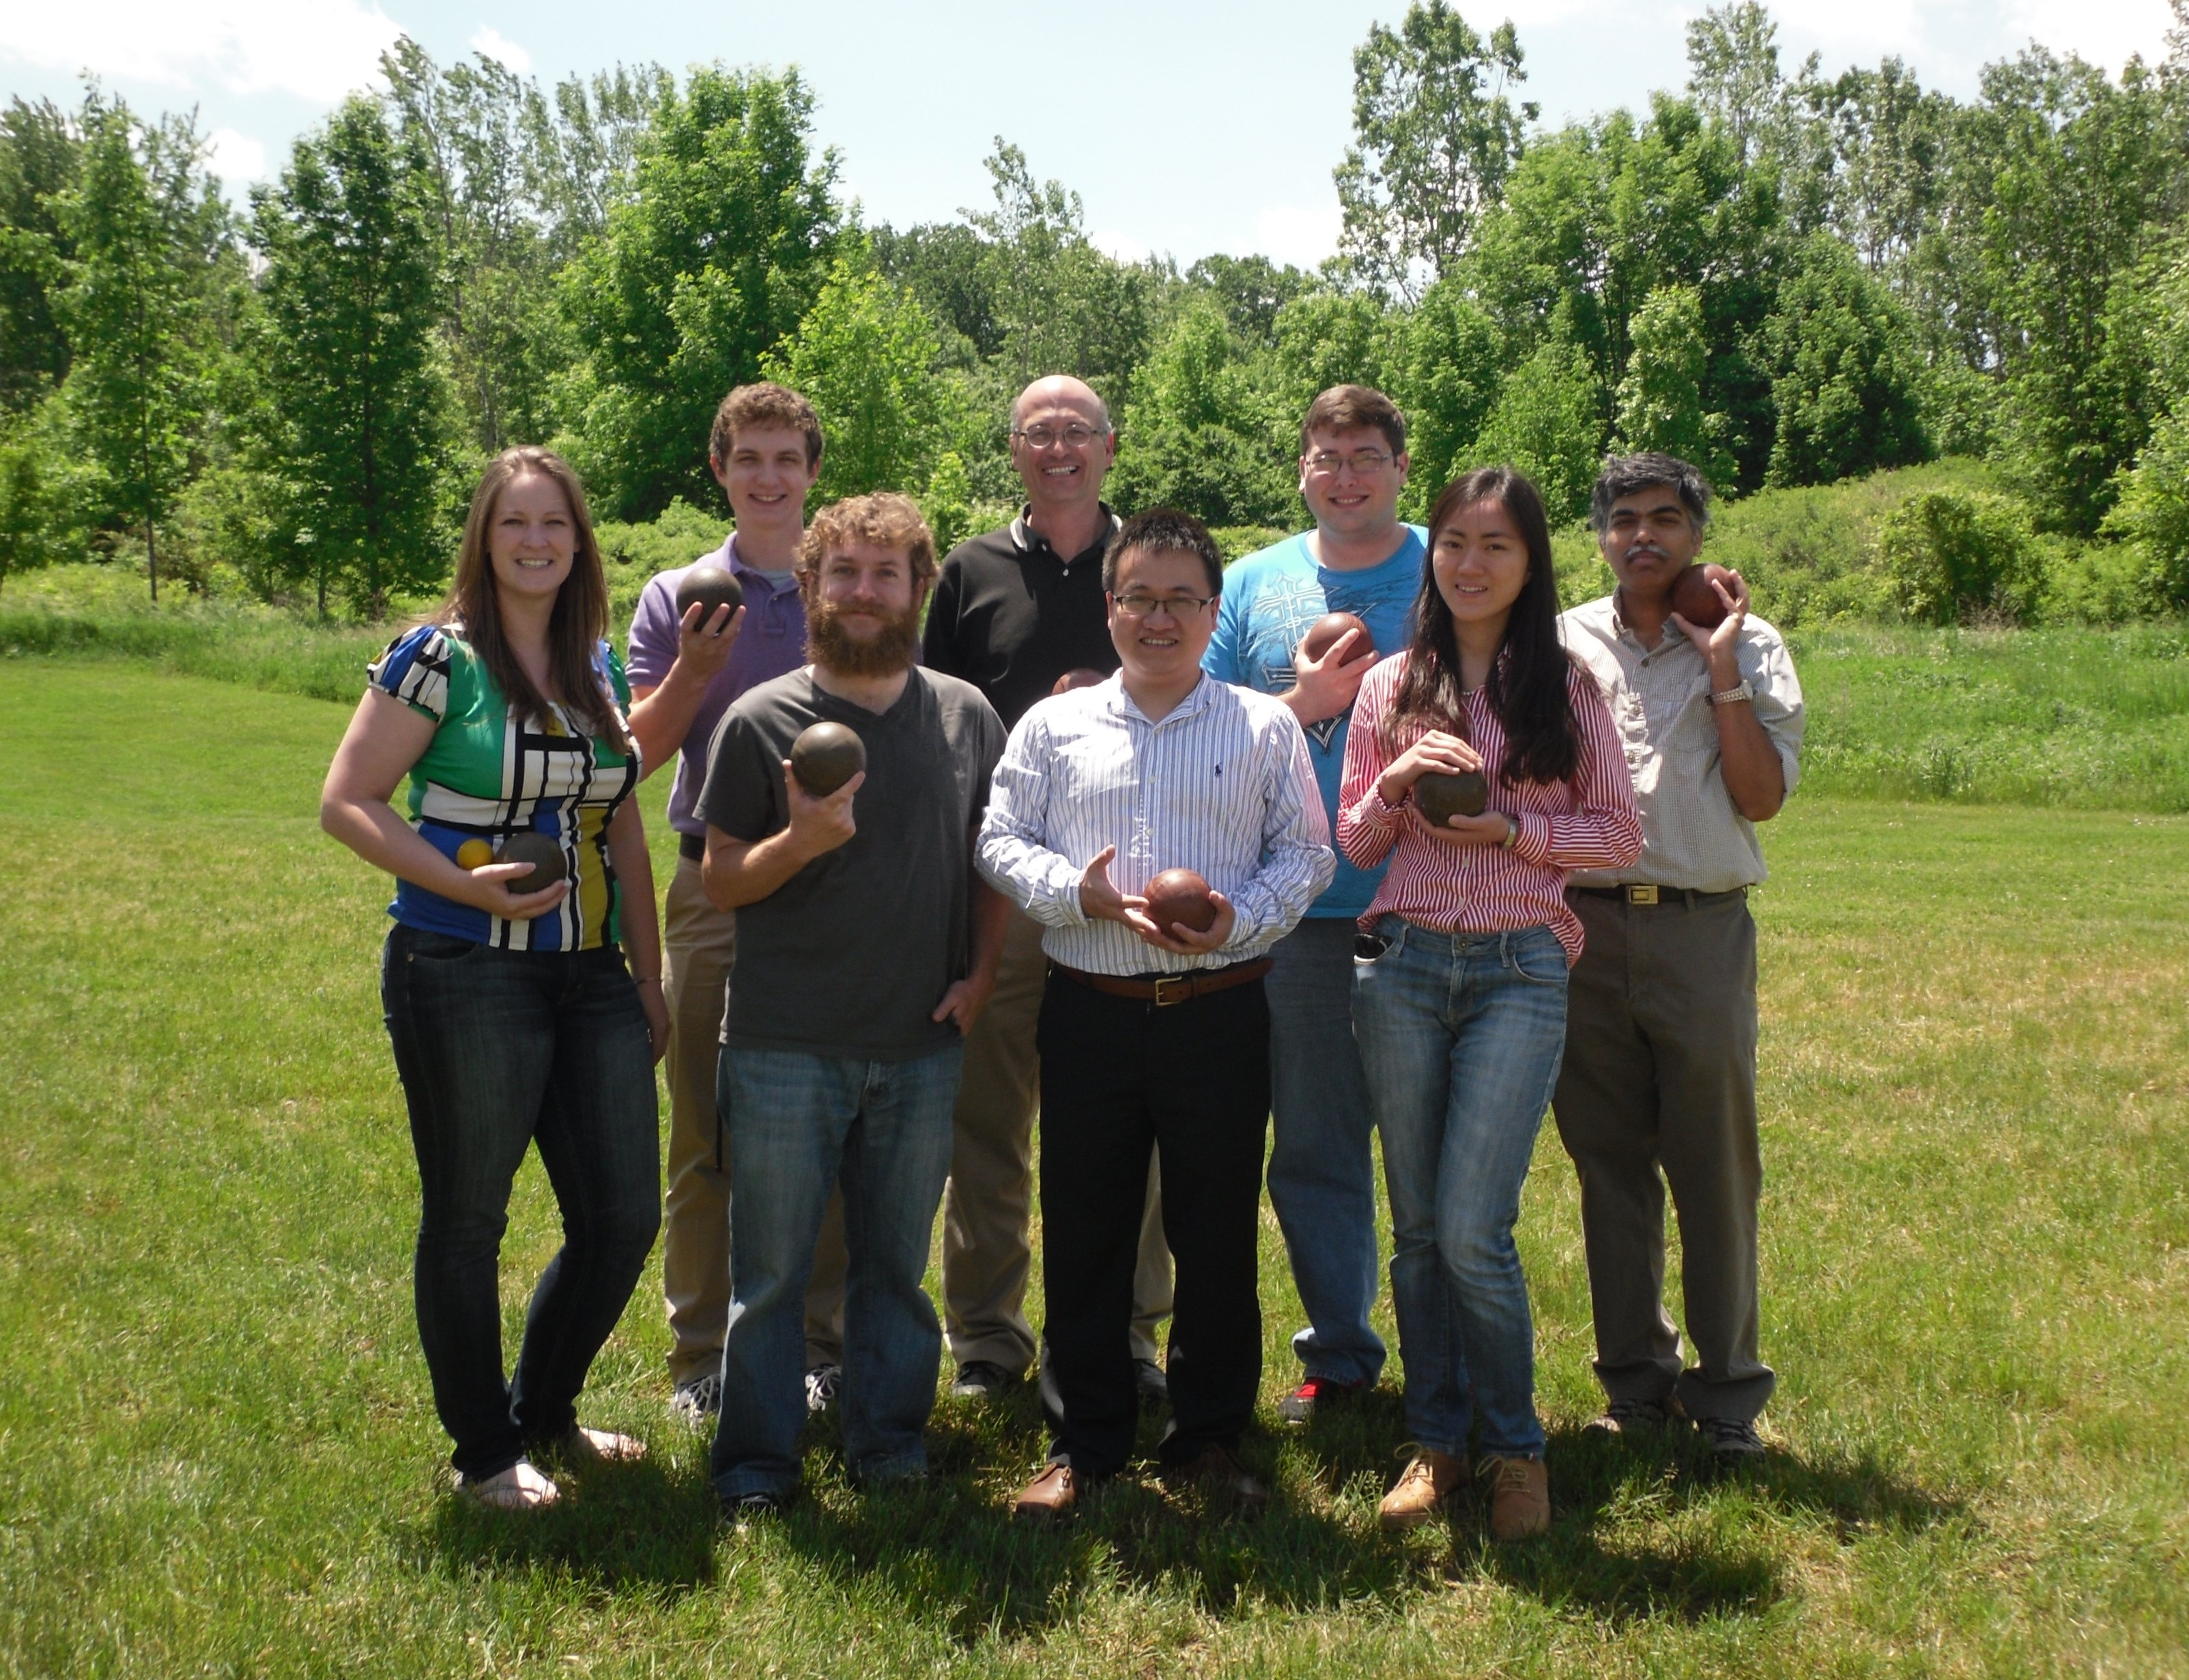 The Morelli Research Group